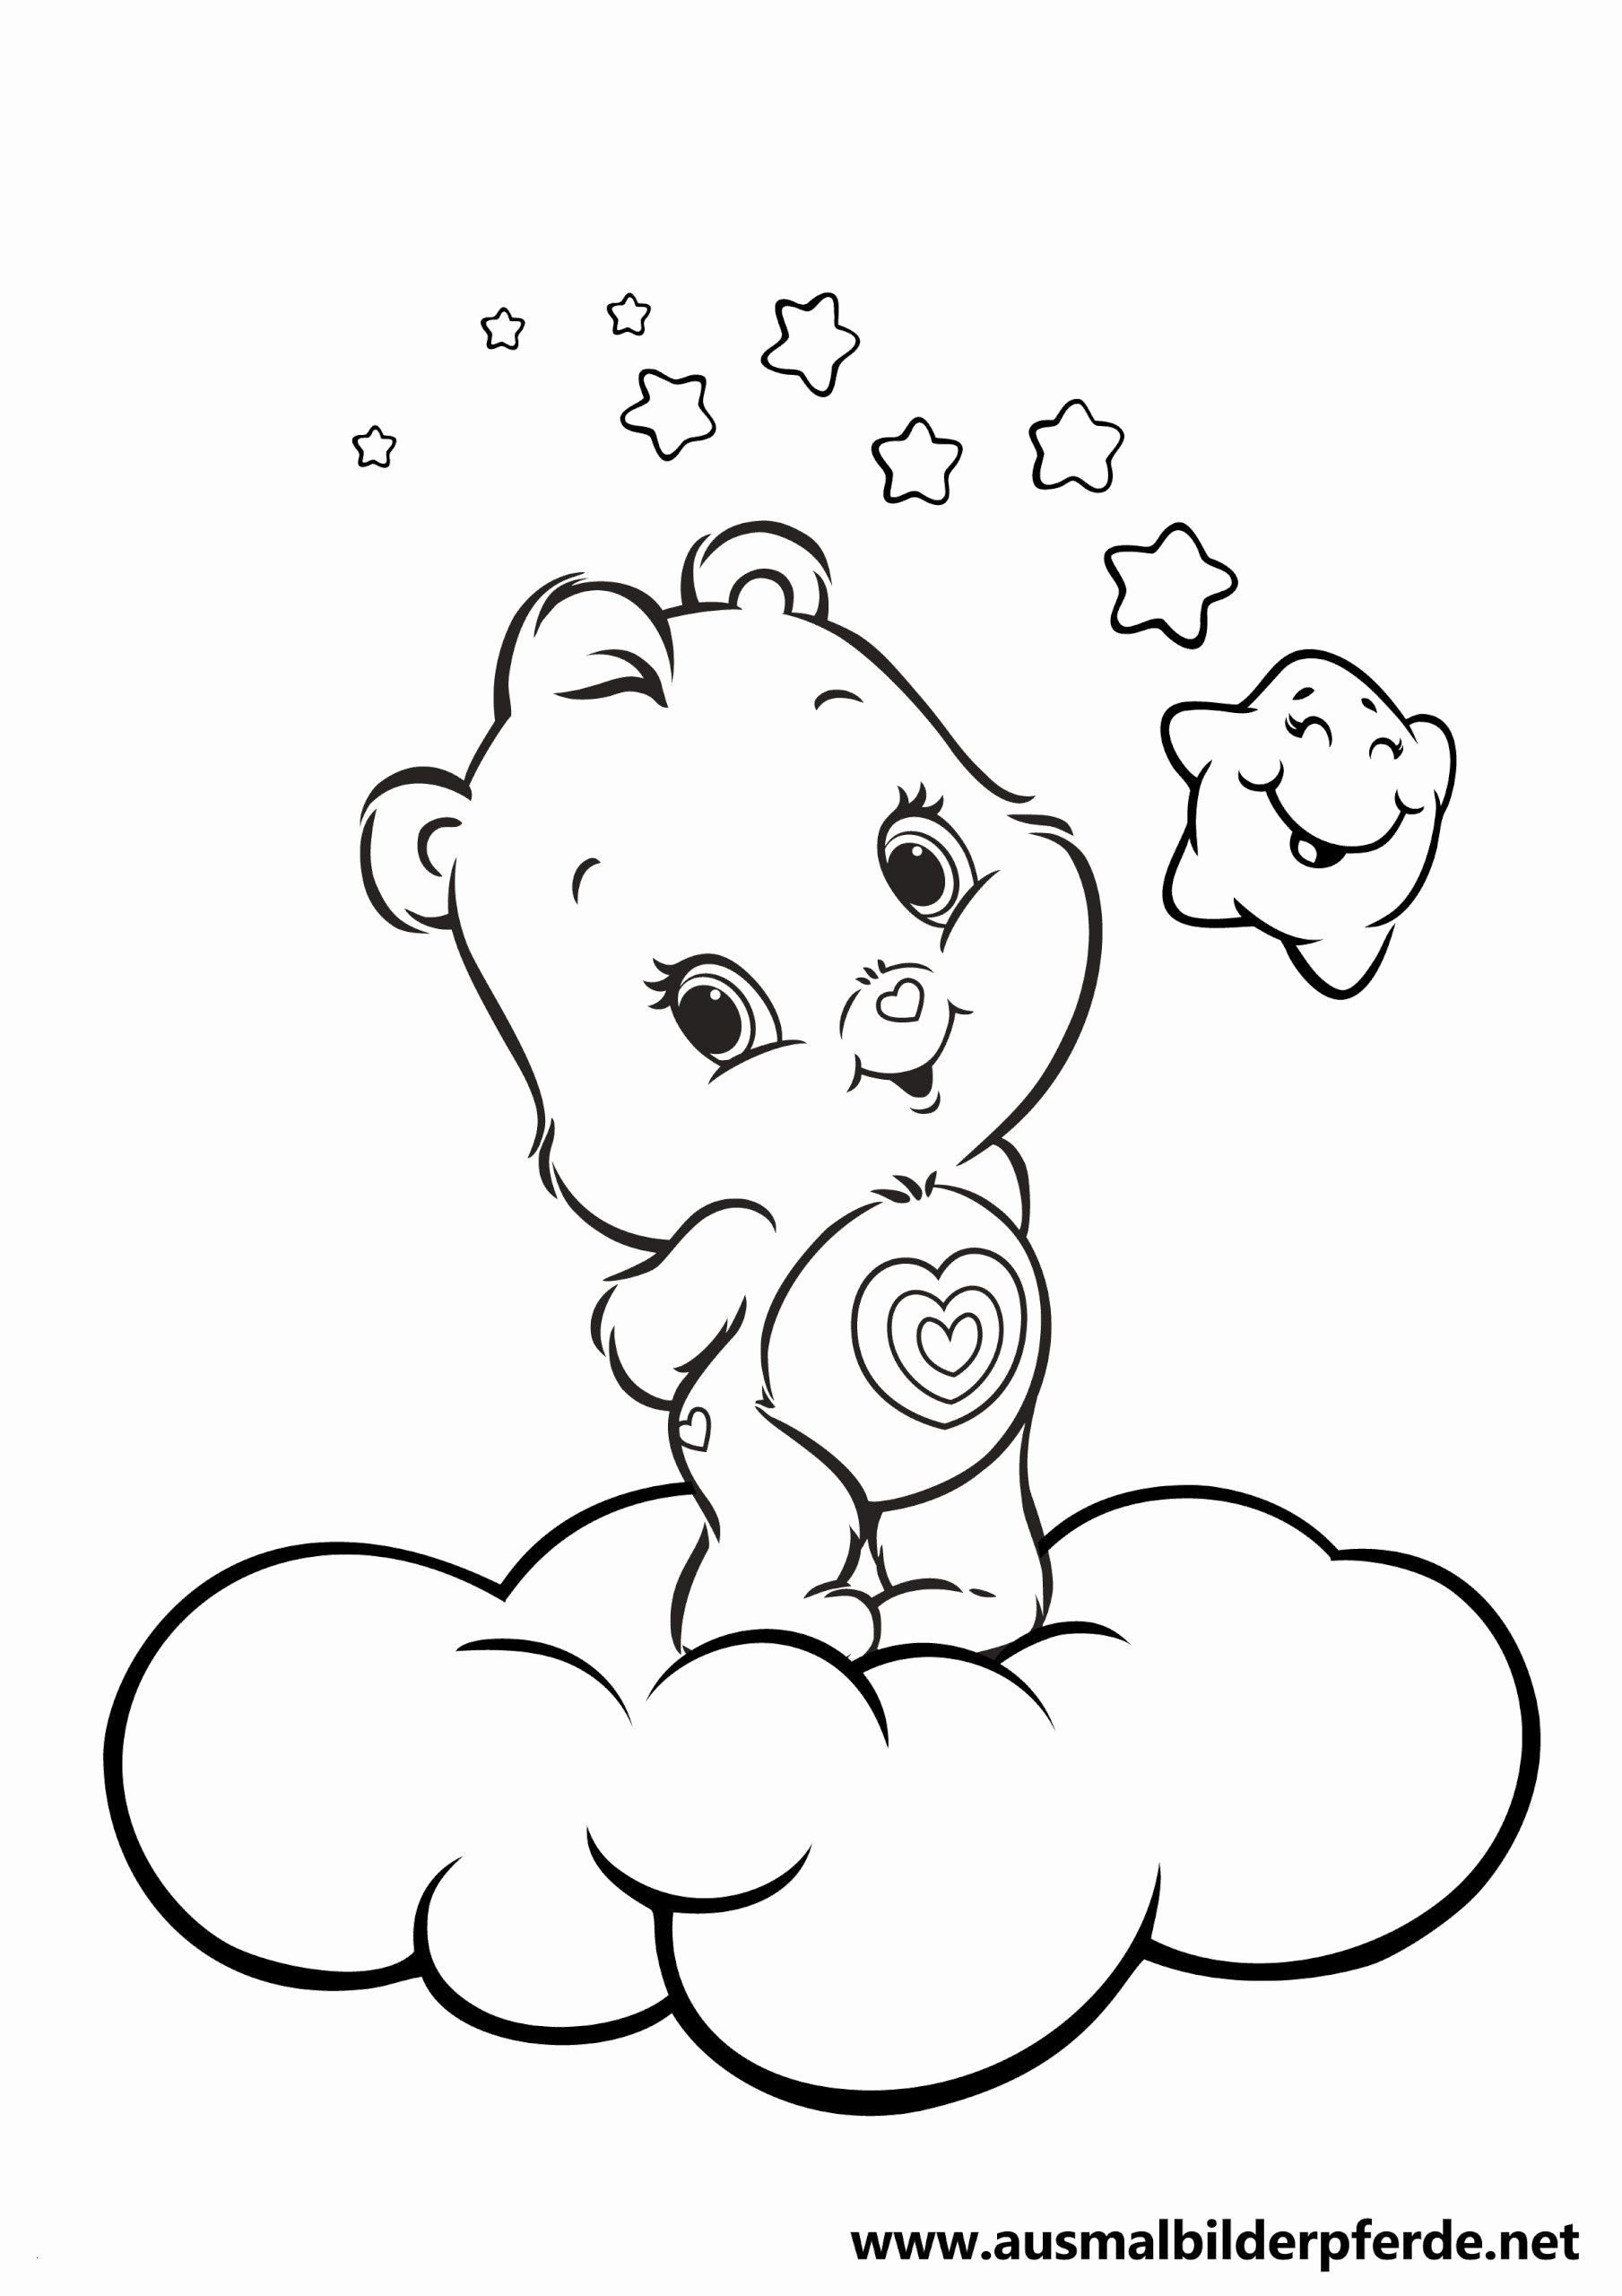 Best Drawing Book For Cartoons Fritcheyforus Drawing Book Unicorn Coloring Pages Pokemon Coloring Pages Mermaid Coloring Pages